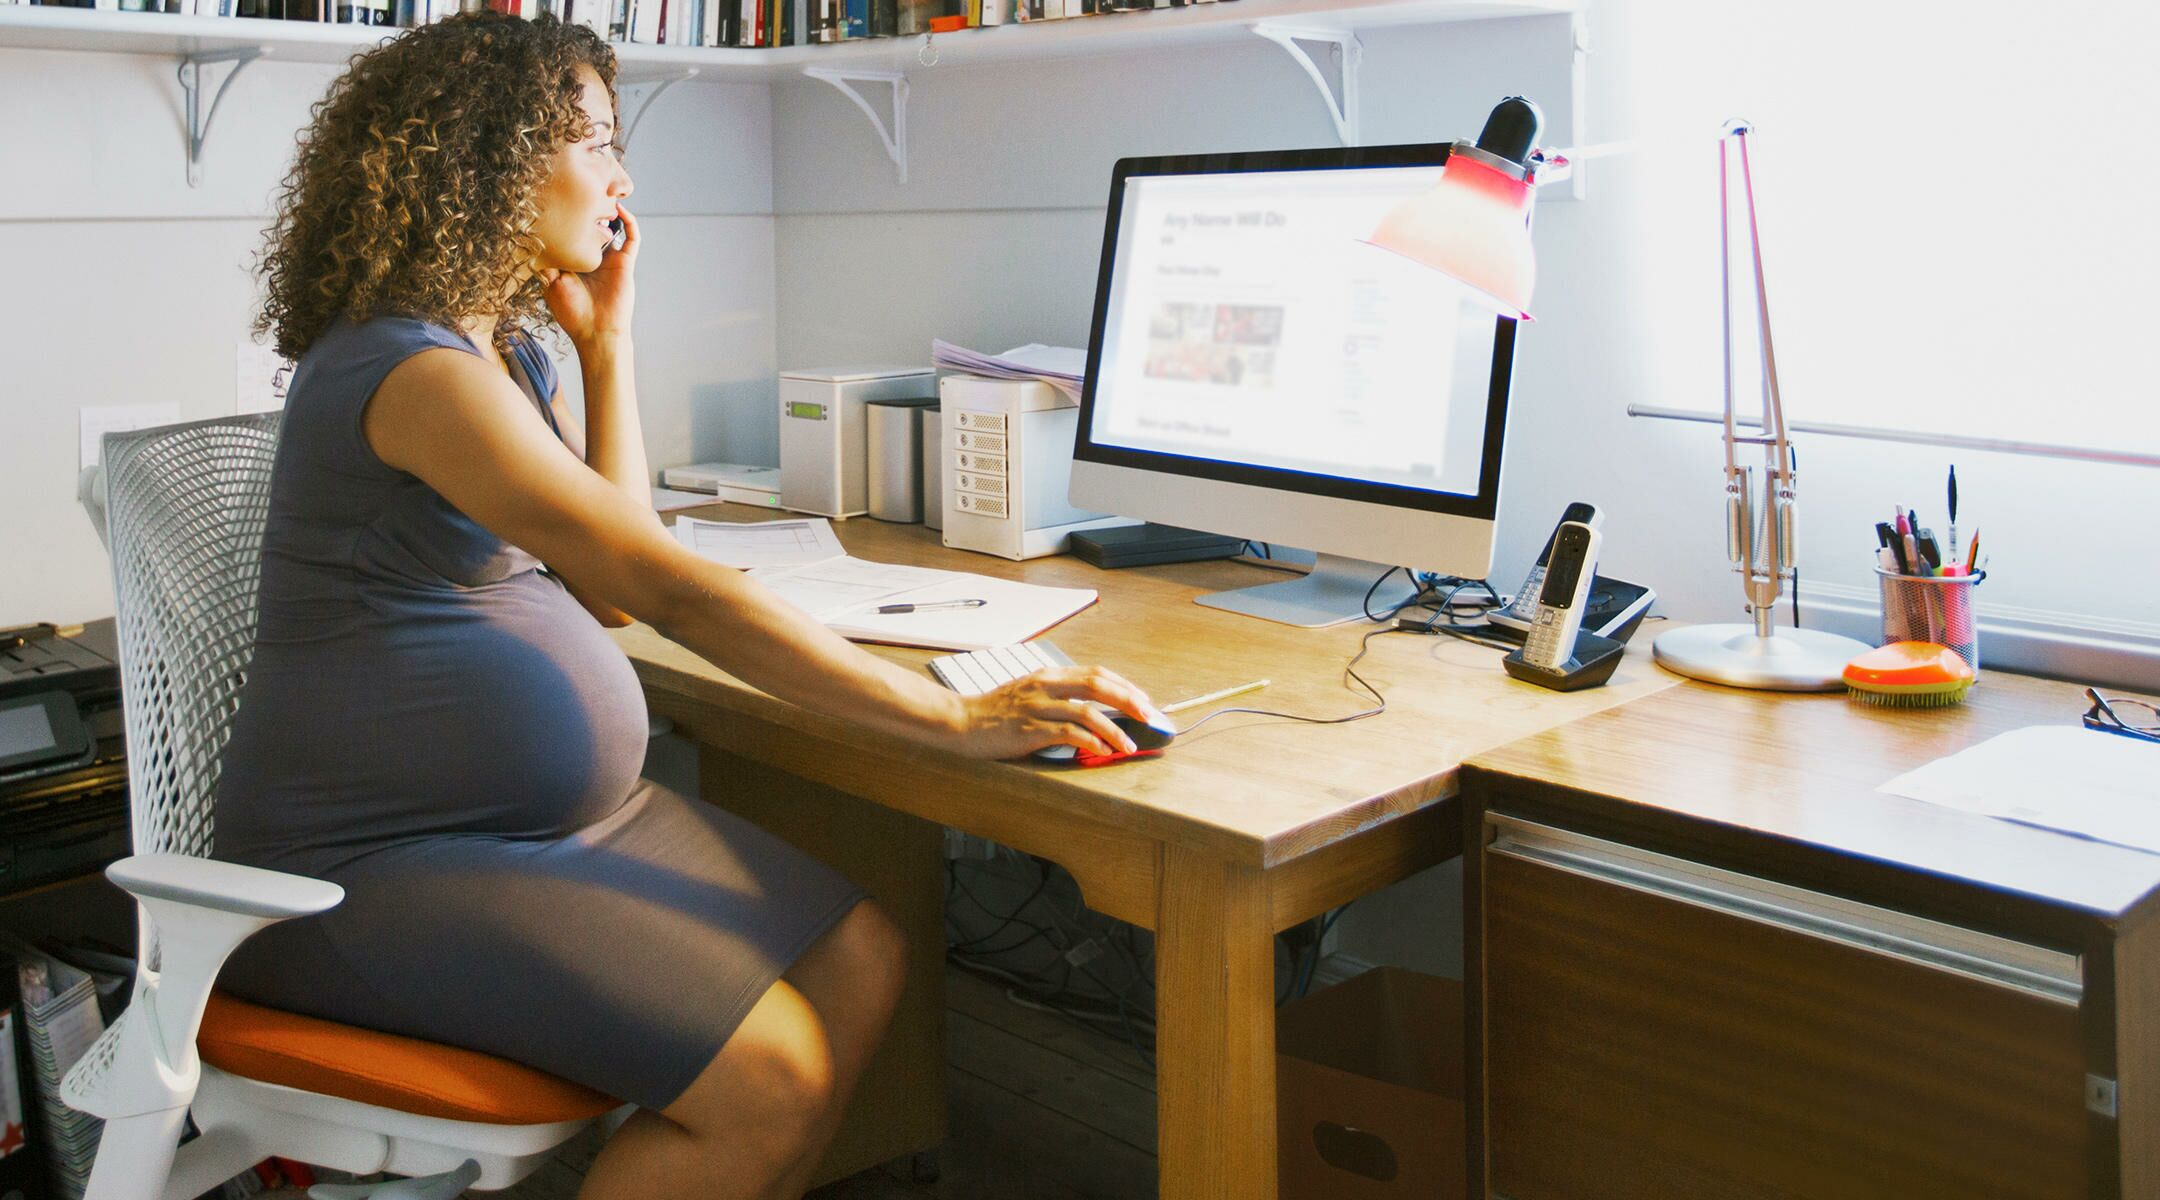 66 Percent Of Women Think Pregnancy Puts Their Career At